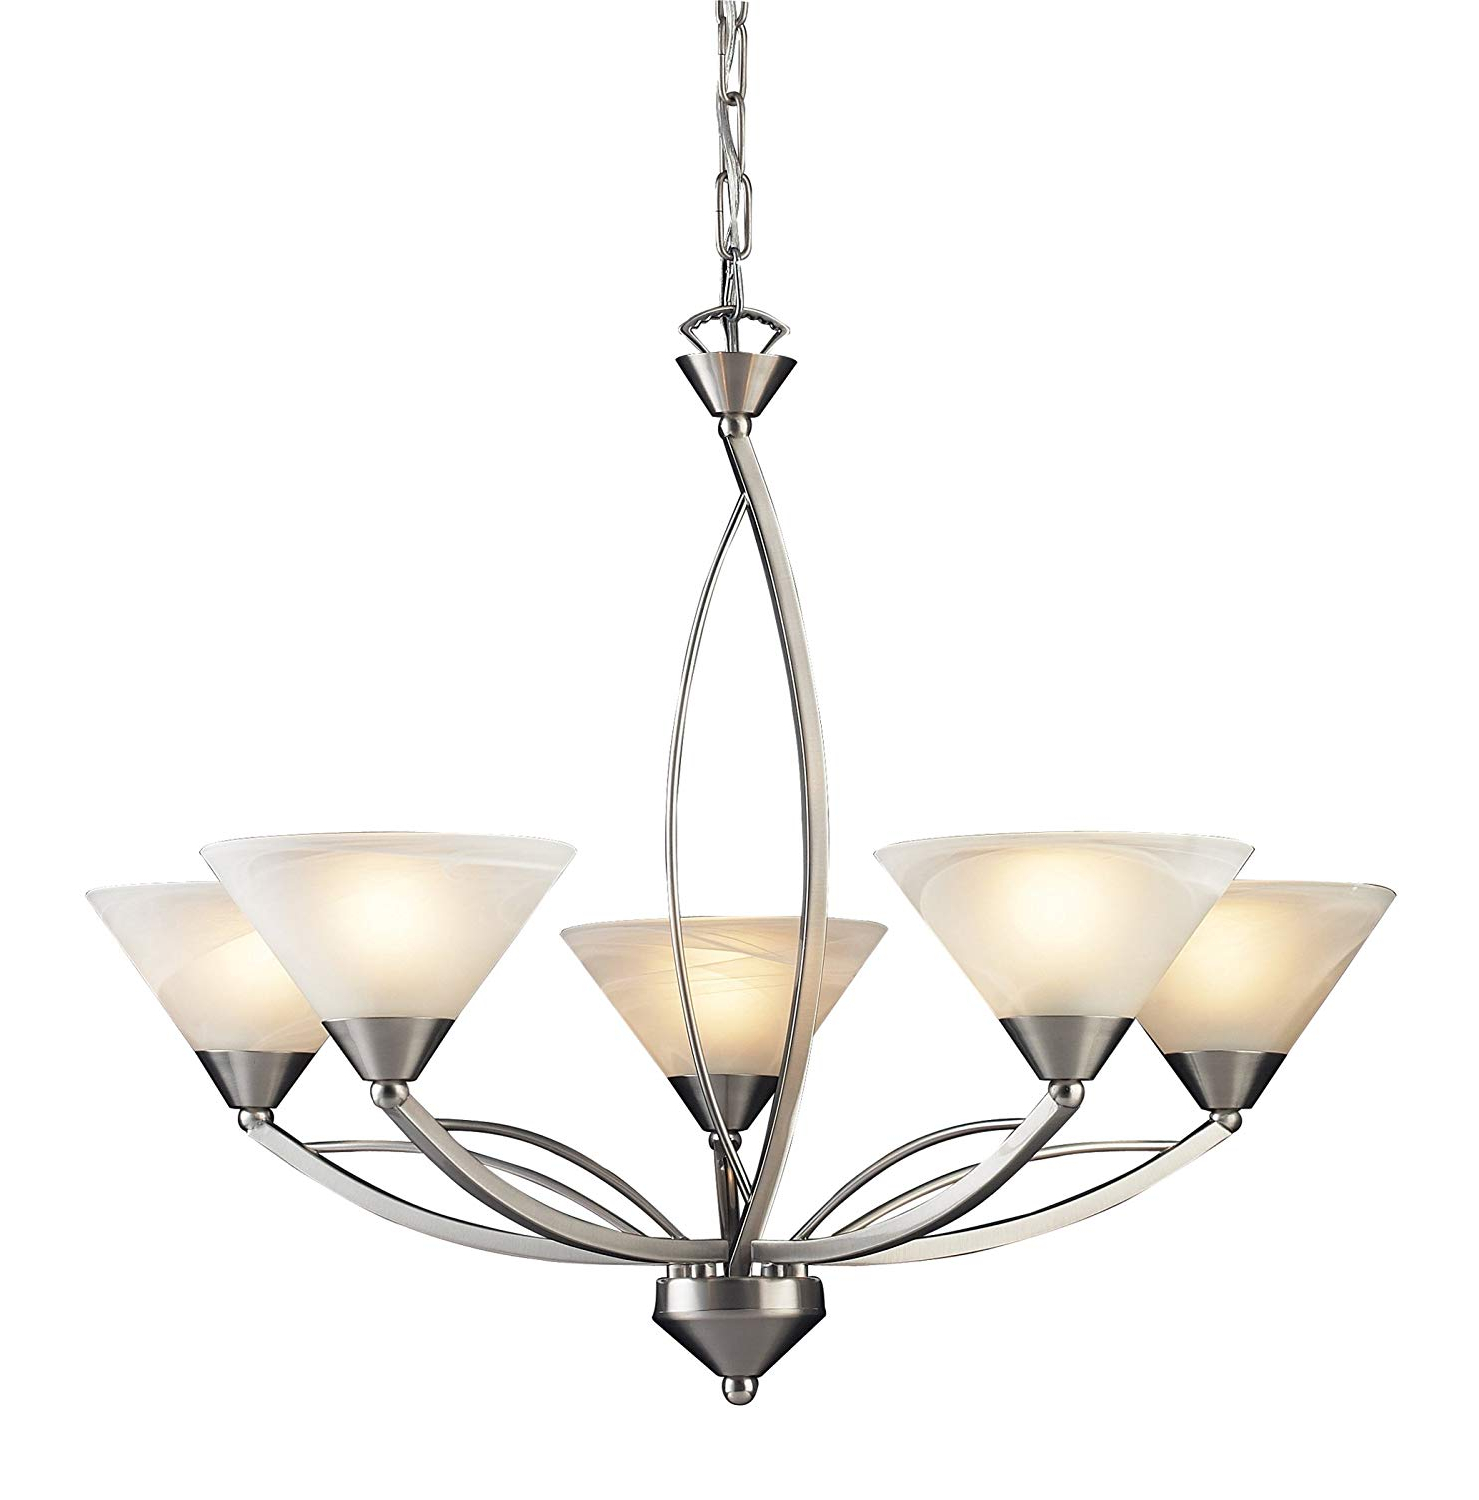 Suki 5 Light Shaded Chandeliers With Most Current Elk 7637/5 5 Light Chandelier In Satin Nickel And Marbleized White Glass (View 19 of 25)